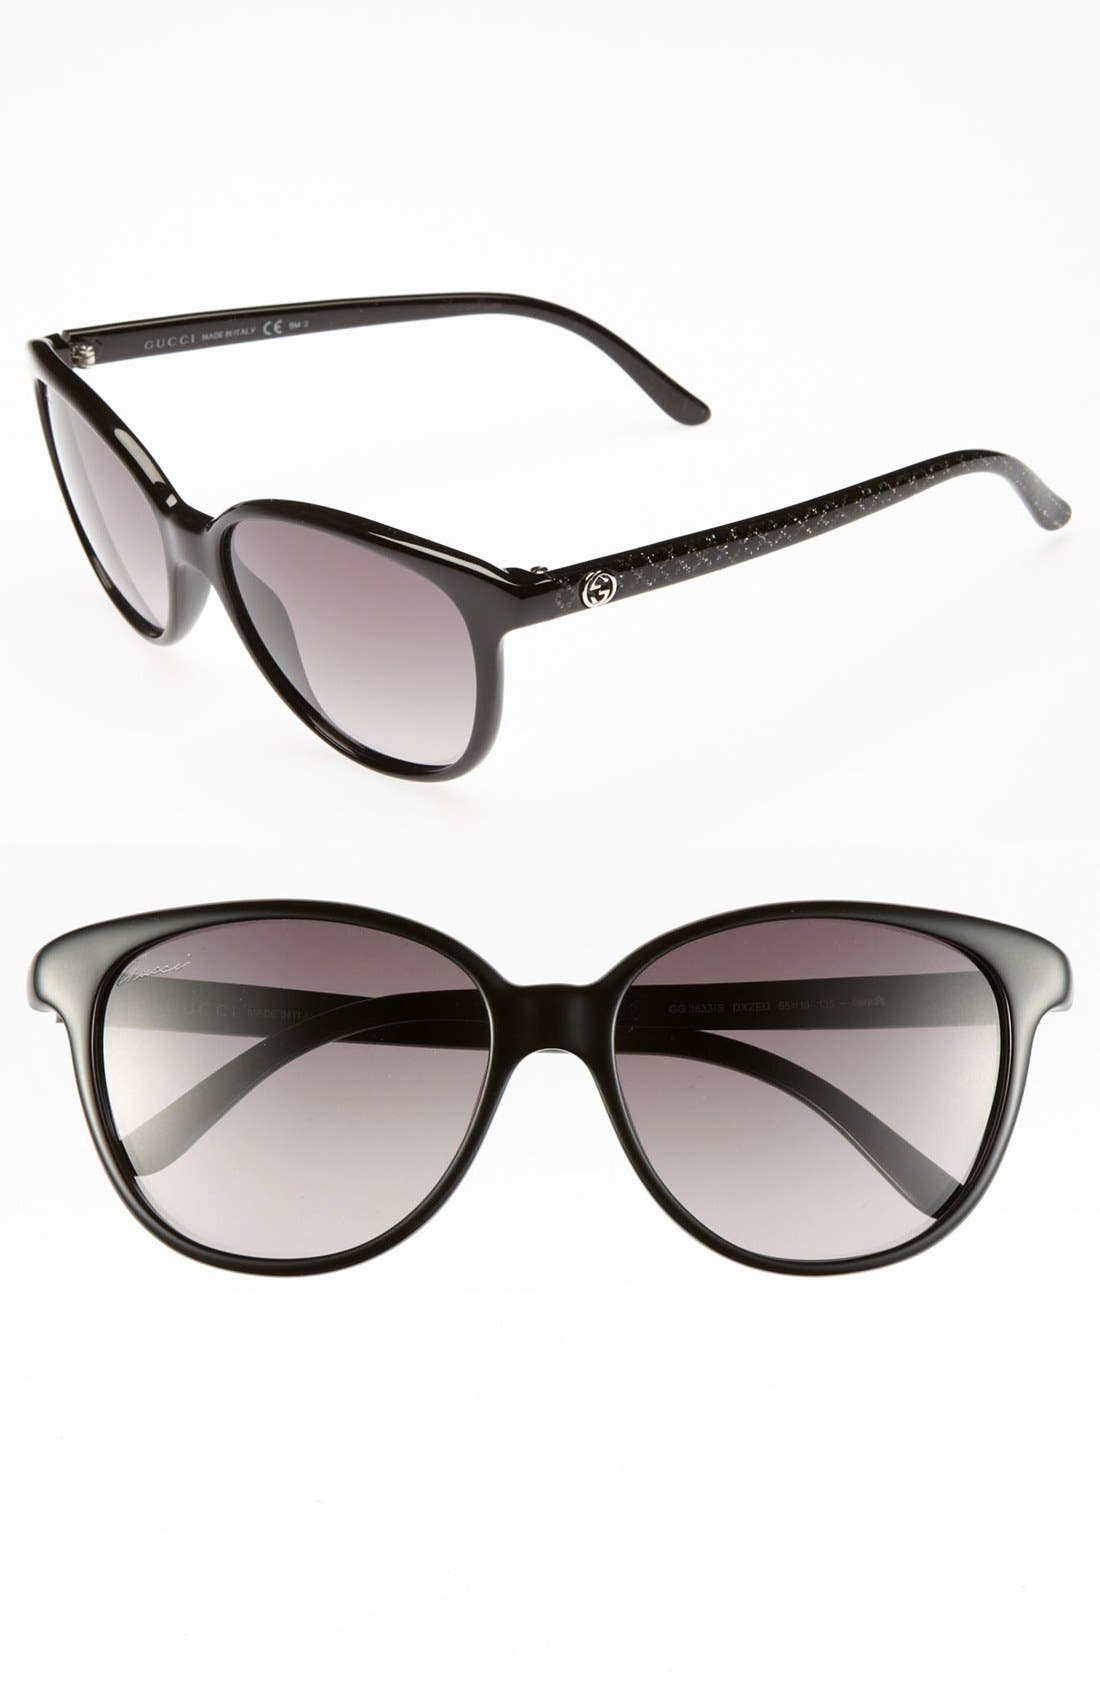 Alternate Image 1 Selected - Gucci 55mm Retro Sunglasses